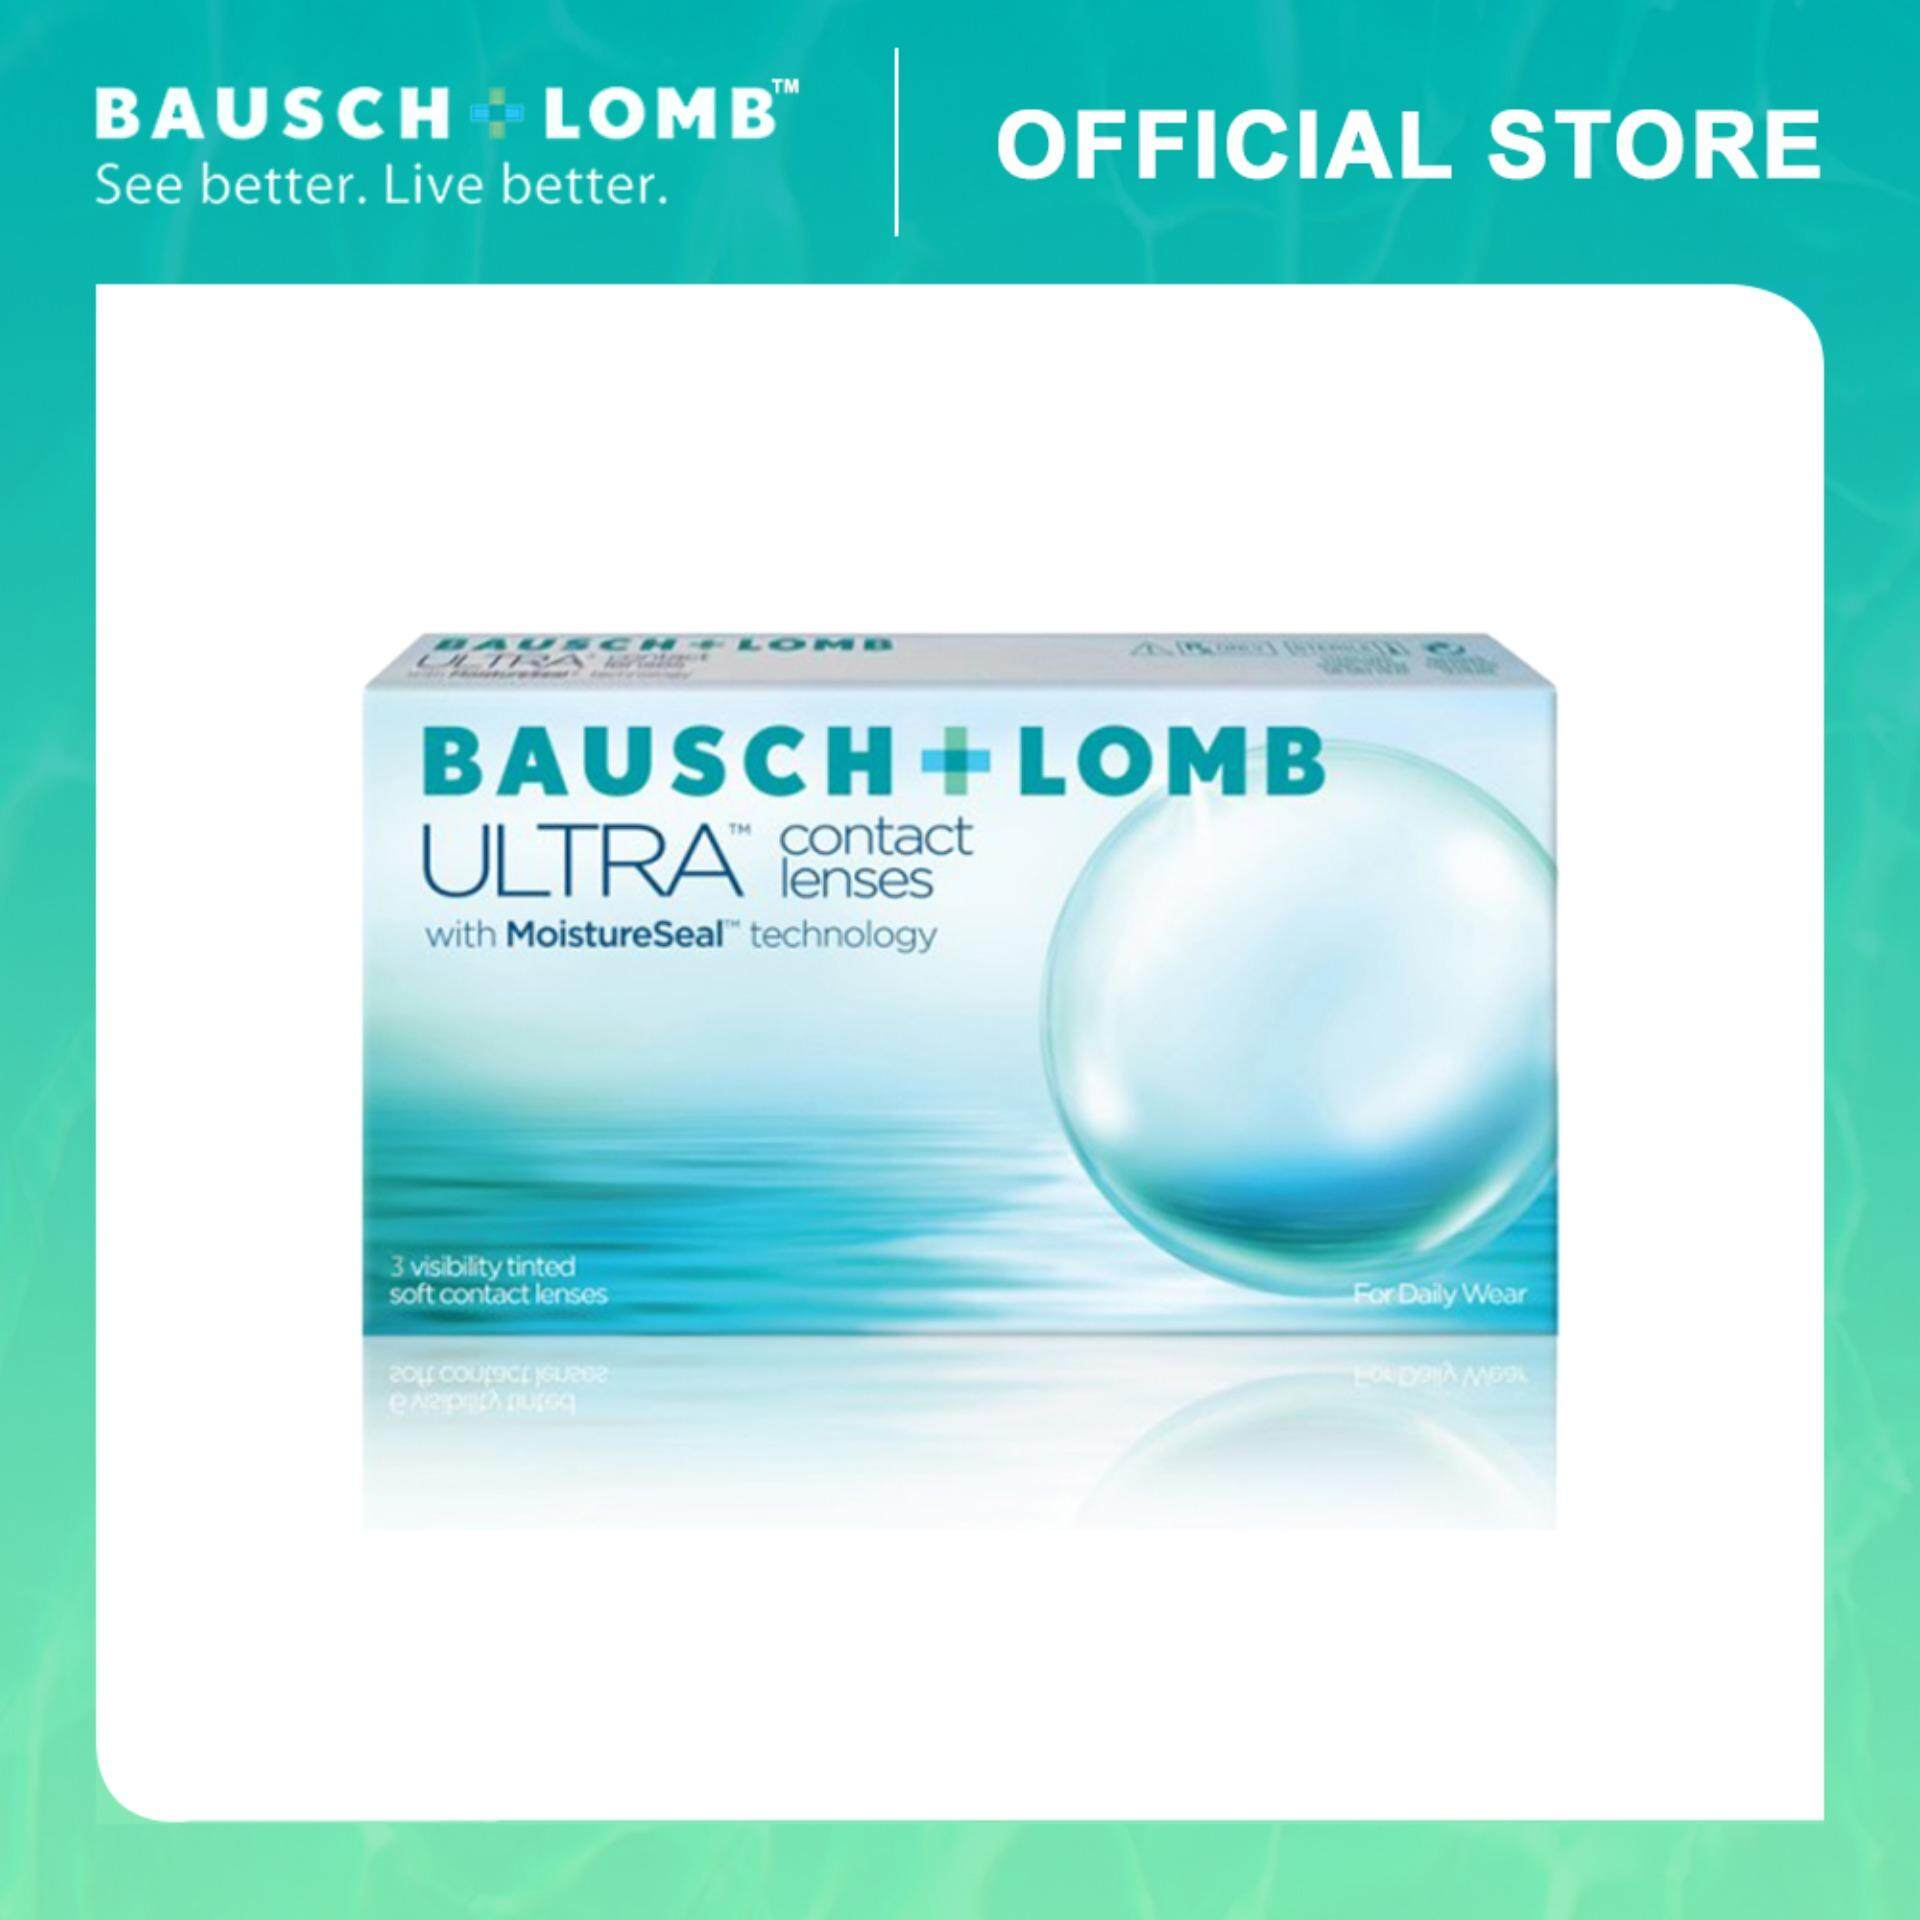 Bausch & Lomb ULTRA Monthly Contact Lenses